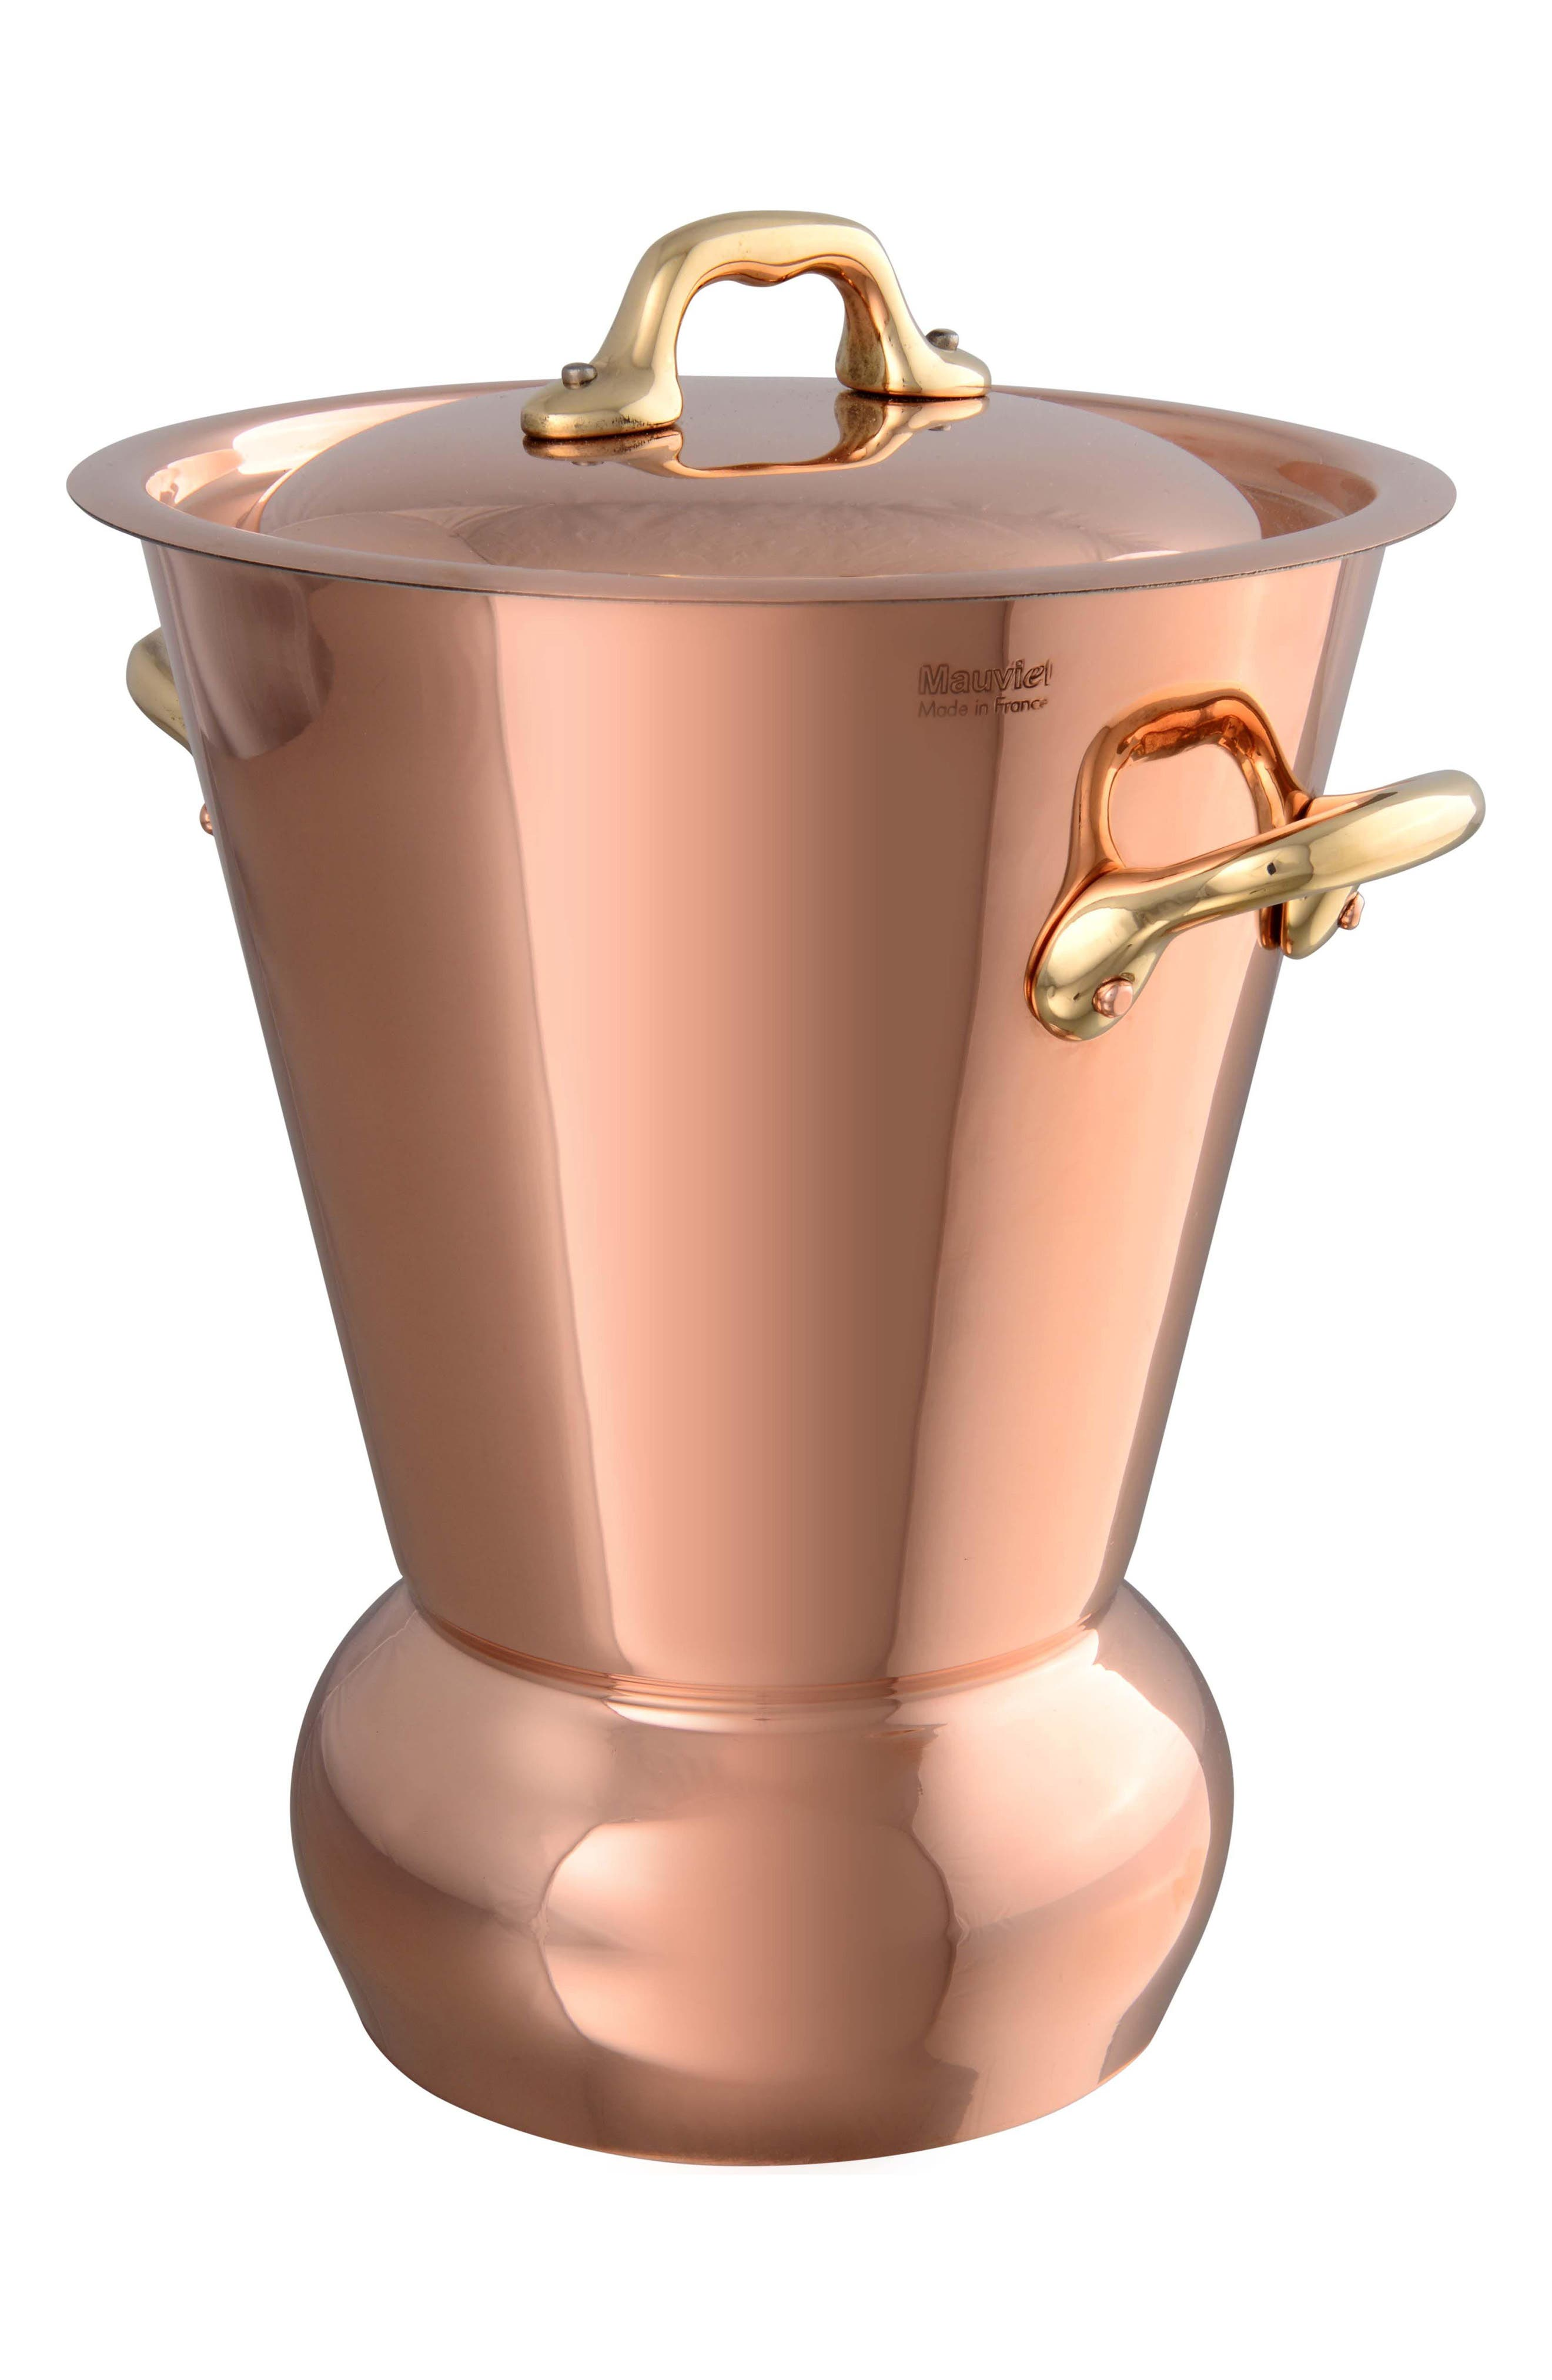 Main Image - Mauviel M'tradition Copper Potato Steamer